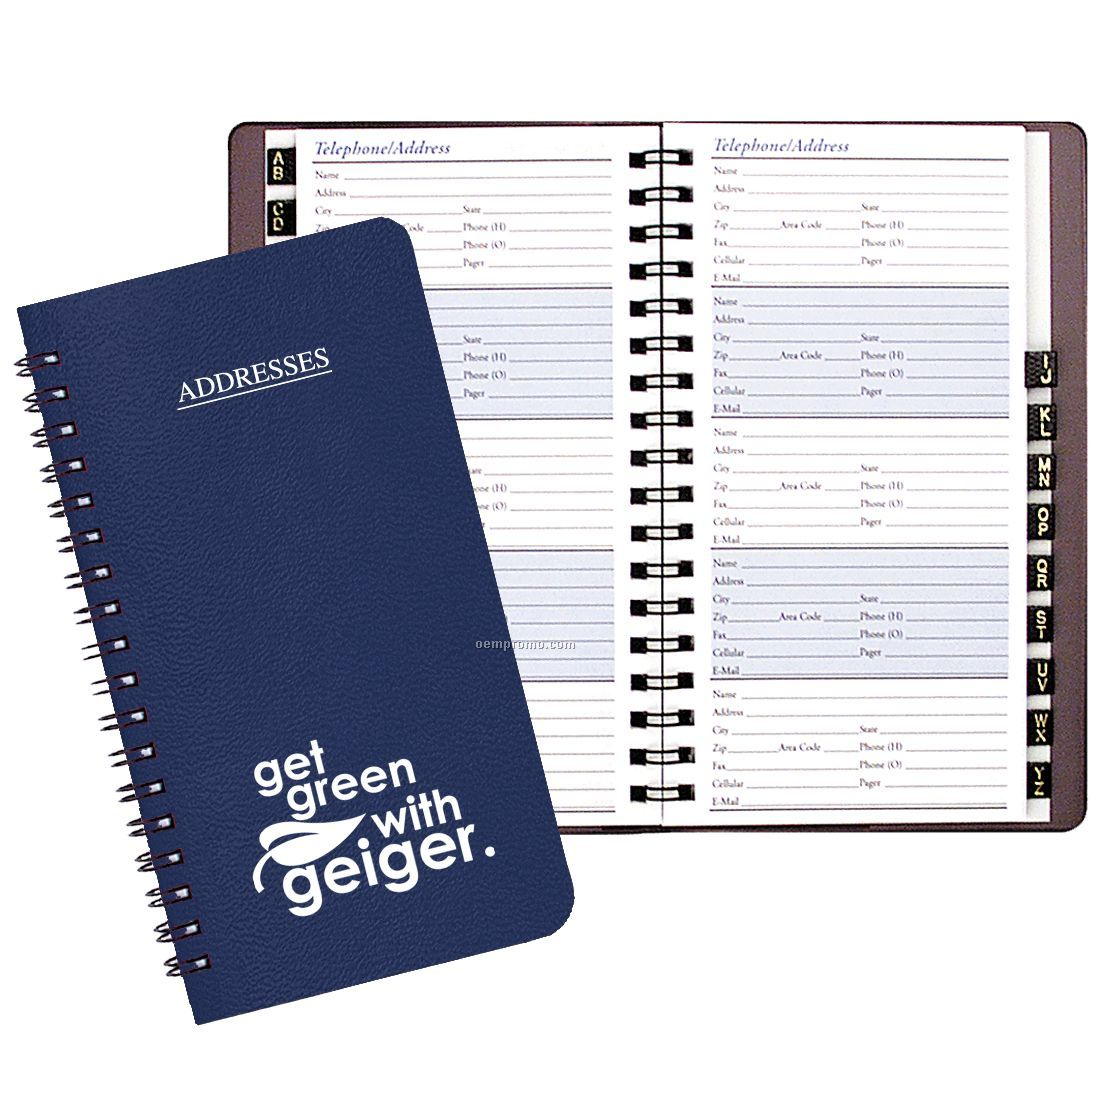 phone and address book